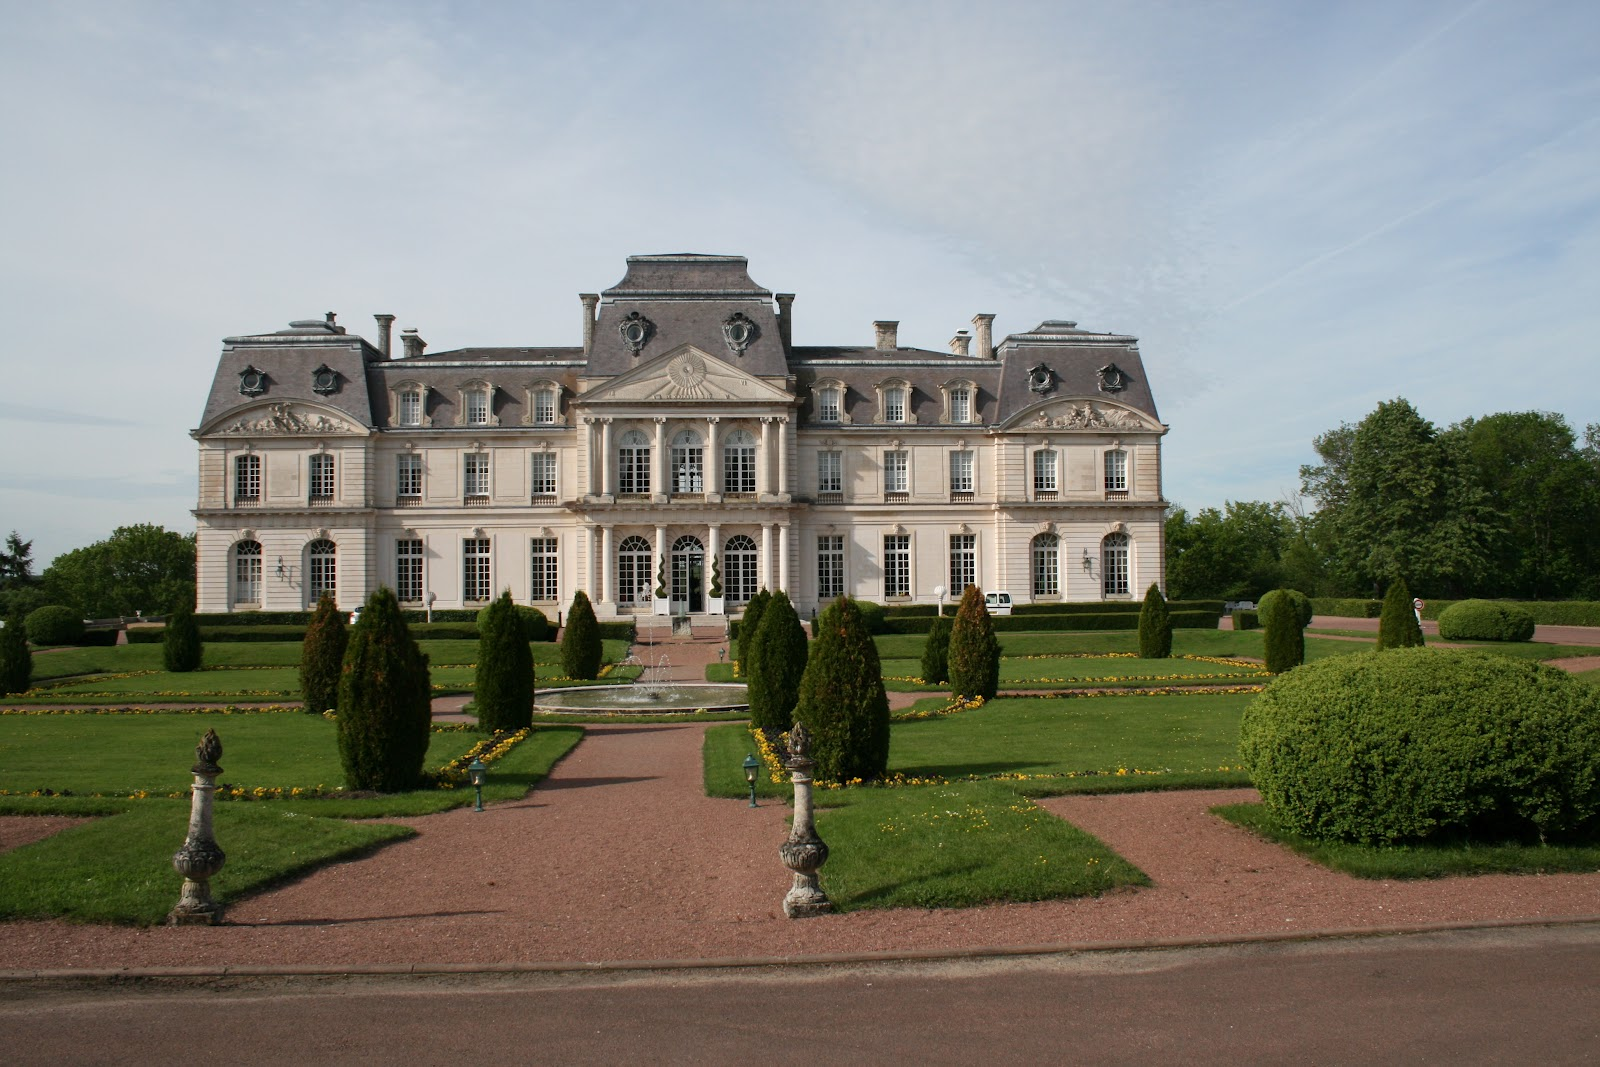 chteau dartigny the loire valley an attractive family owned operated chteau htel near tours france - Chateau D Artigny Mariage